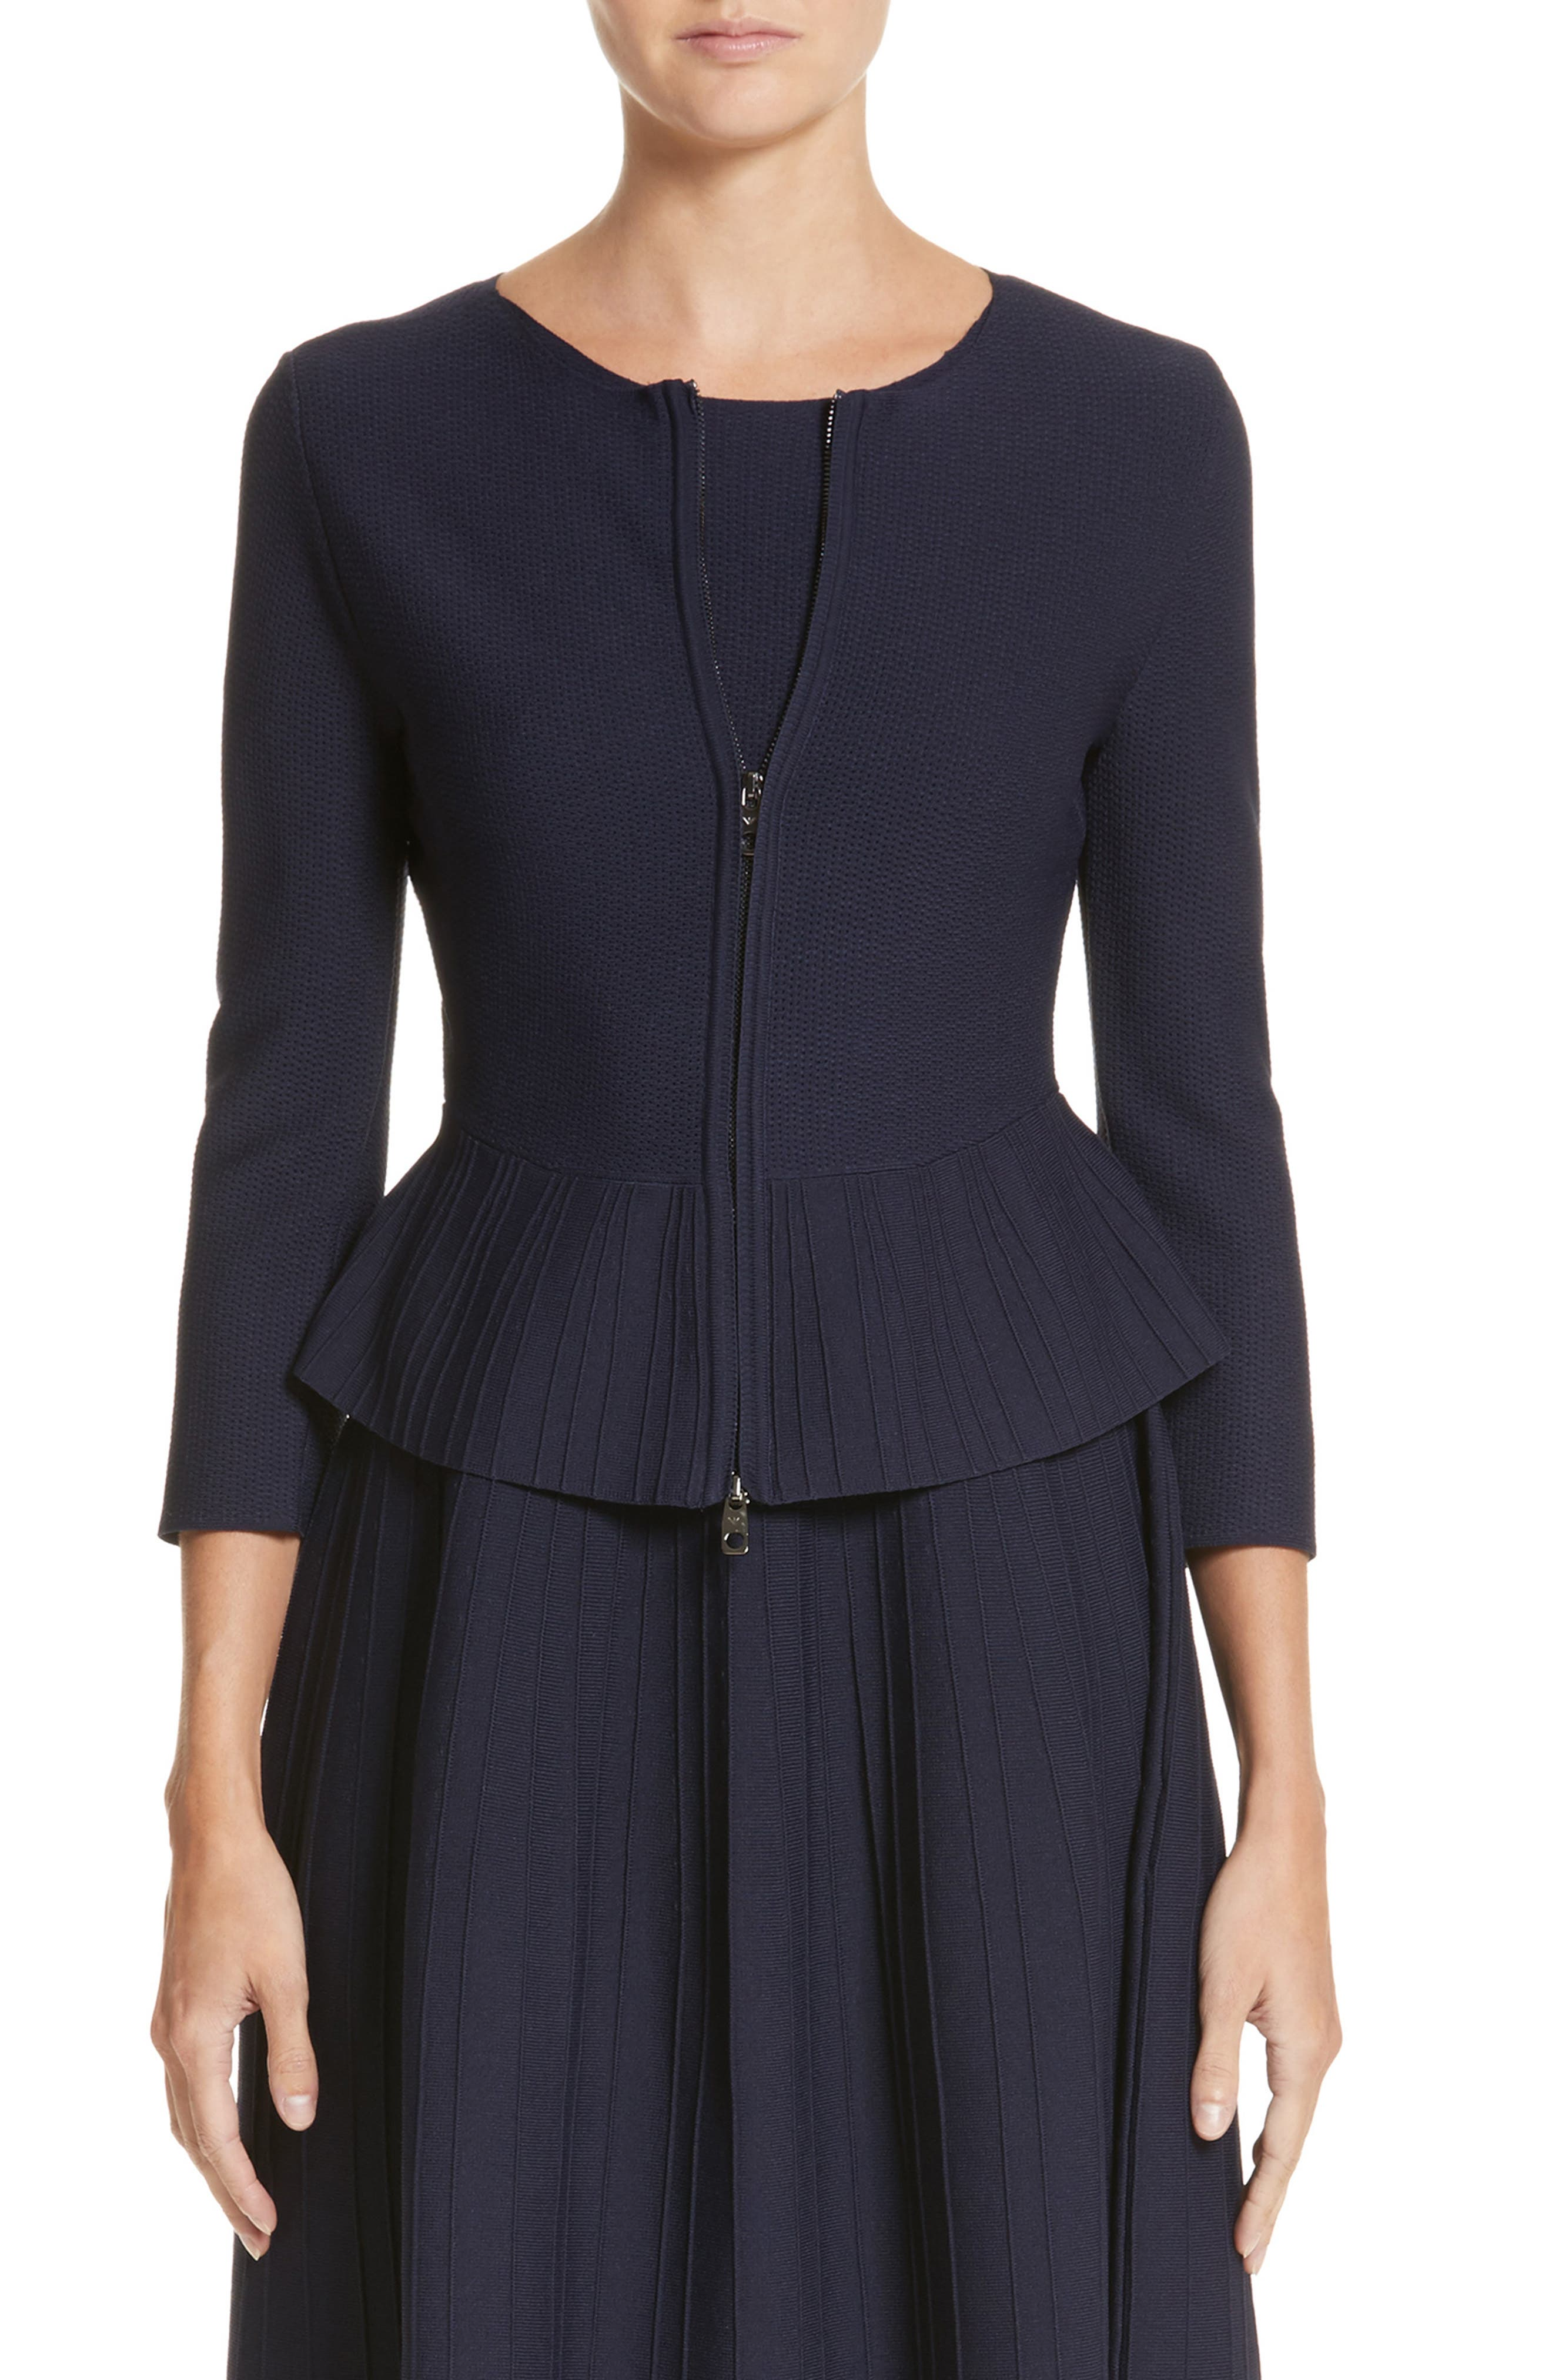 Alternate Image 1 Selected - Emporio Armani Zip Front Peplum Knit Jacket